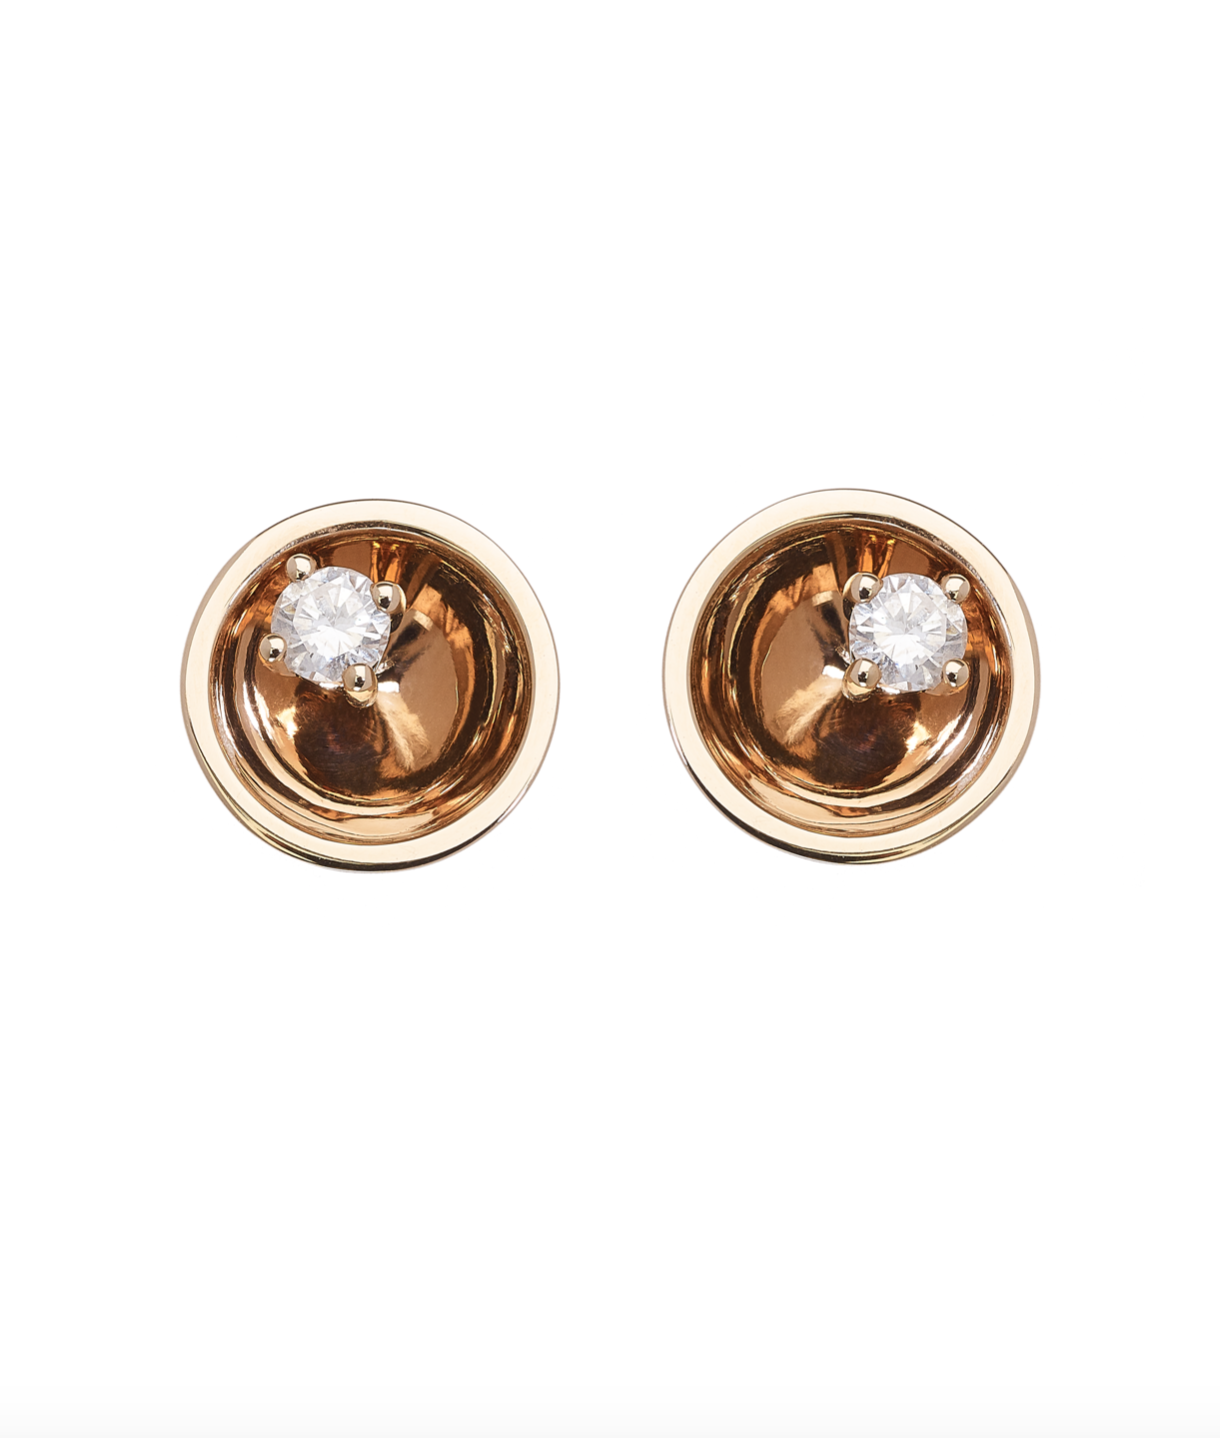 Large Floating Star Diamond Earrings by Marmari on curated-crowd.com